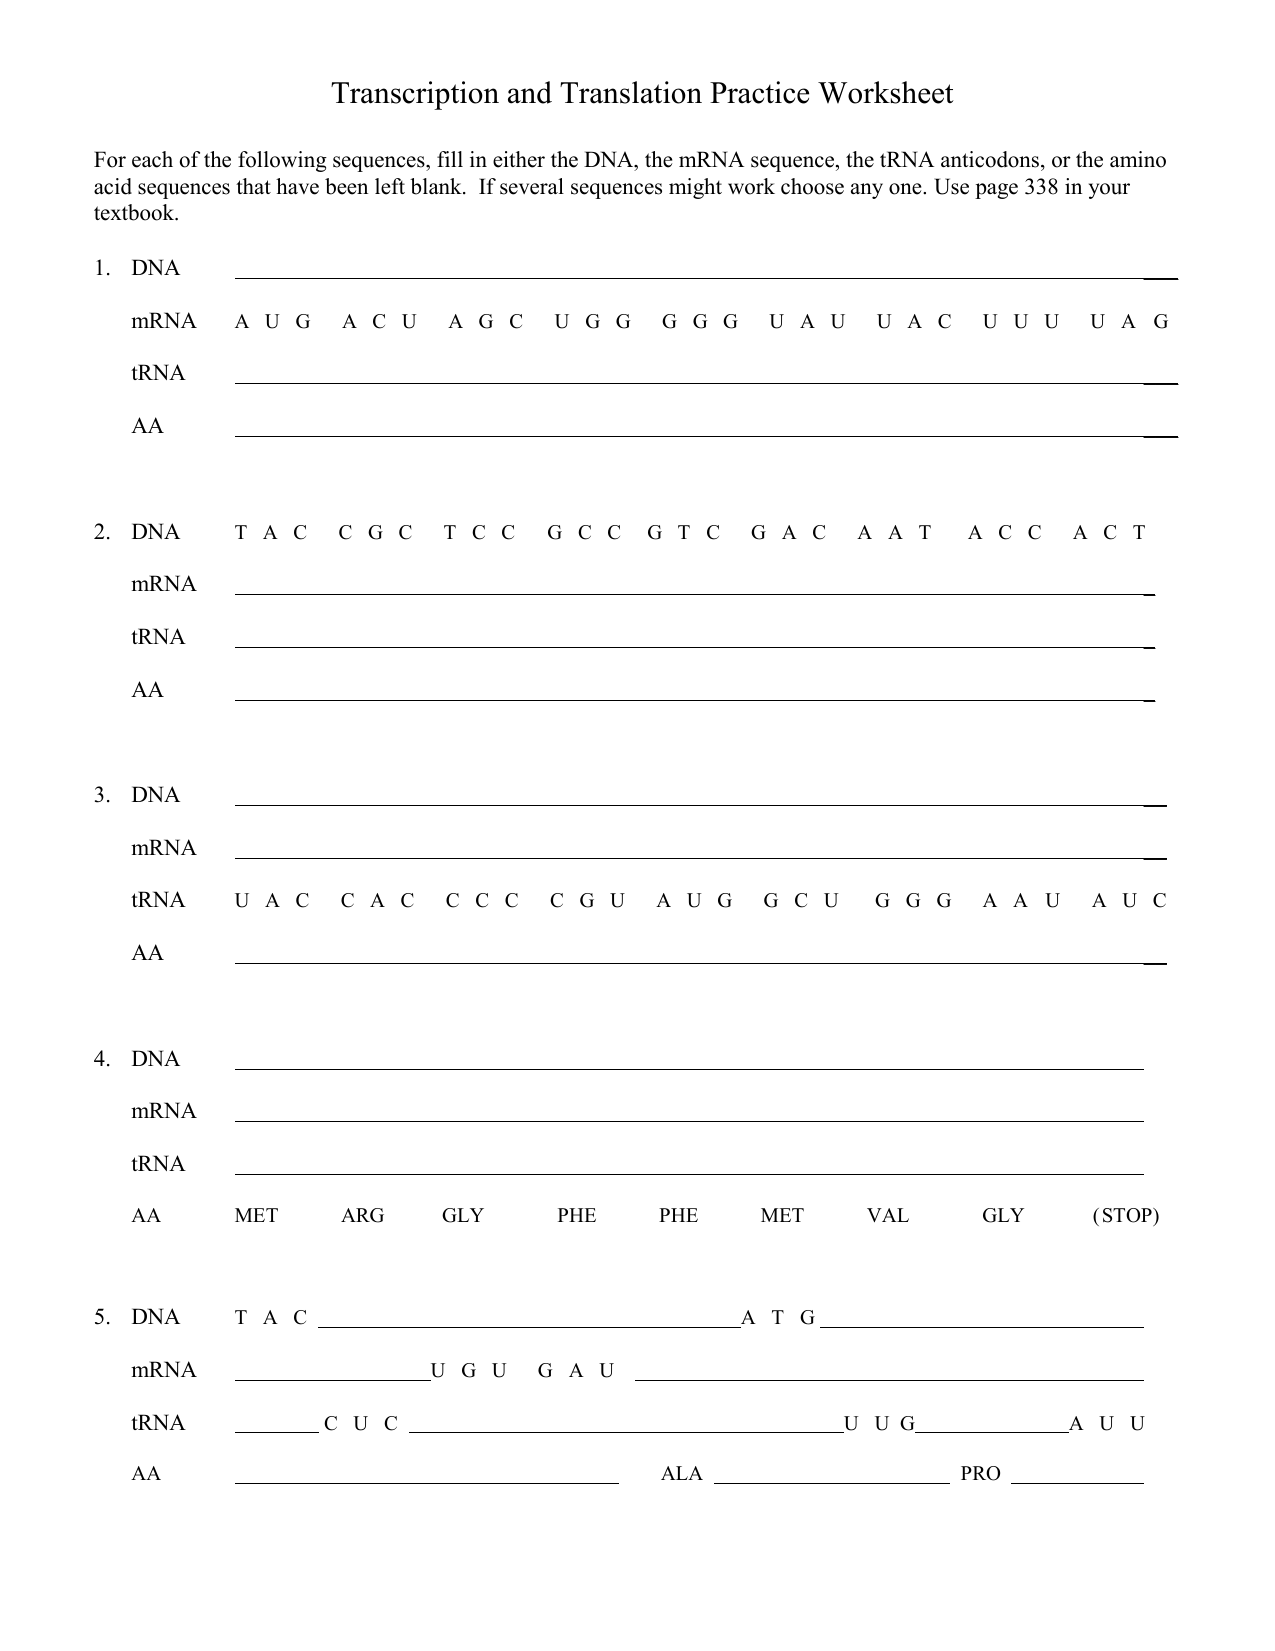 Transcription And Translation Practice Worksheet 1 1